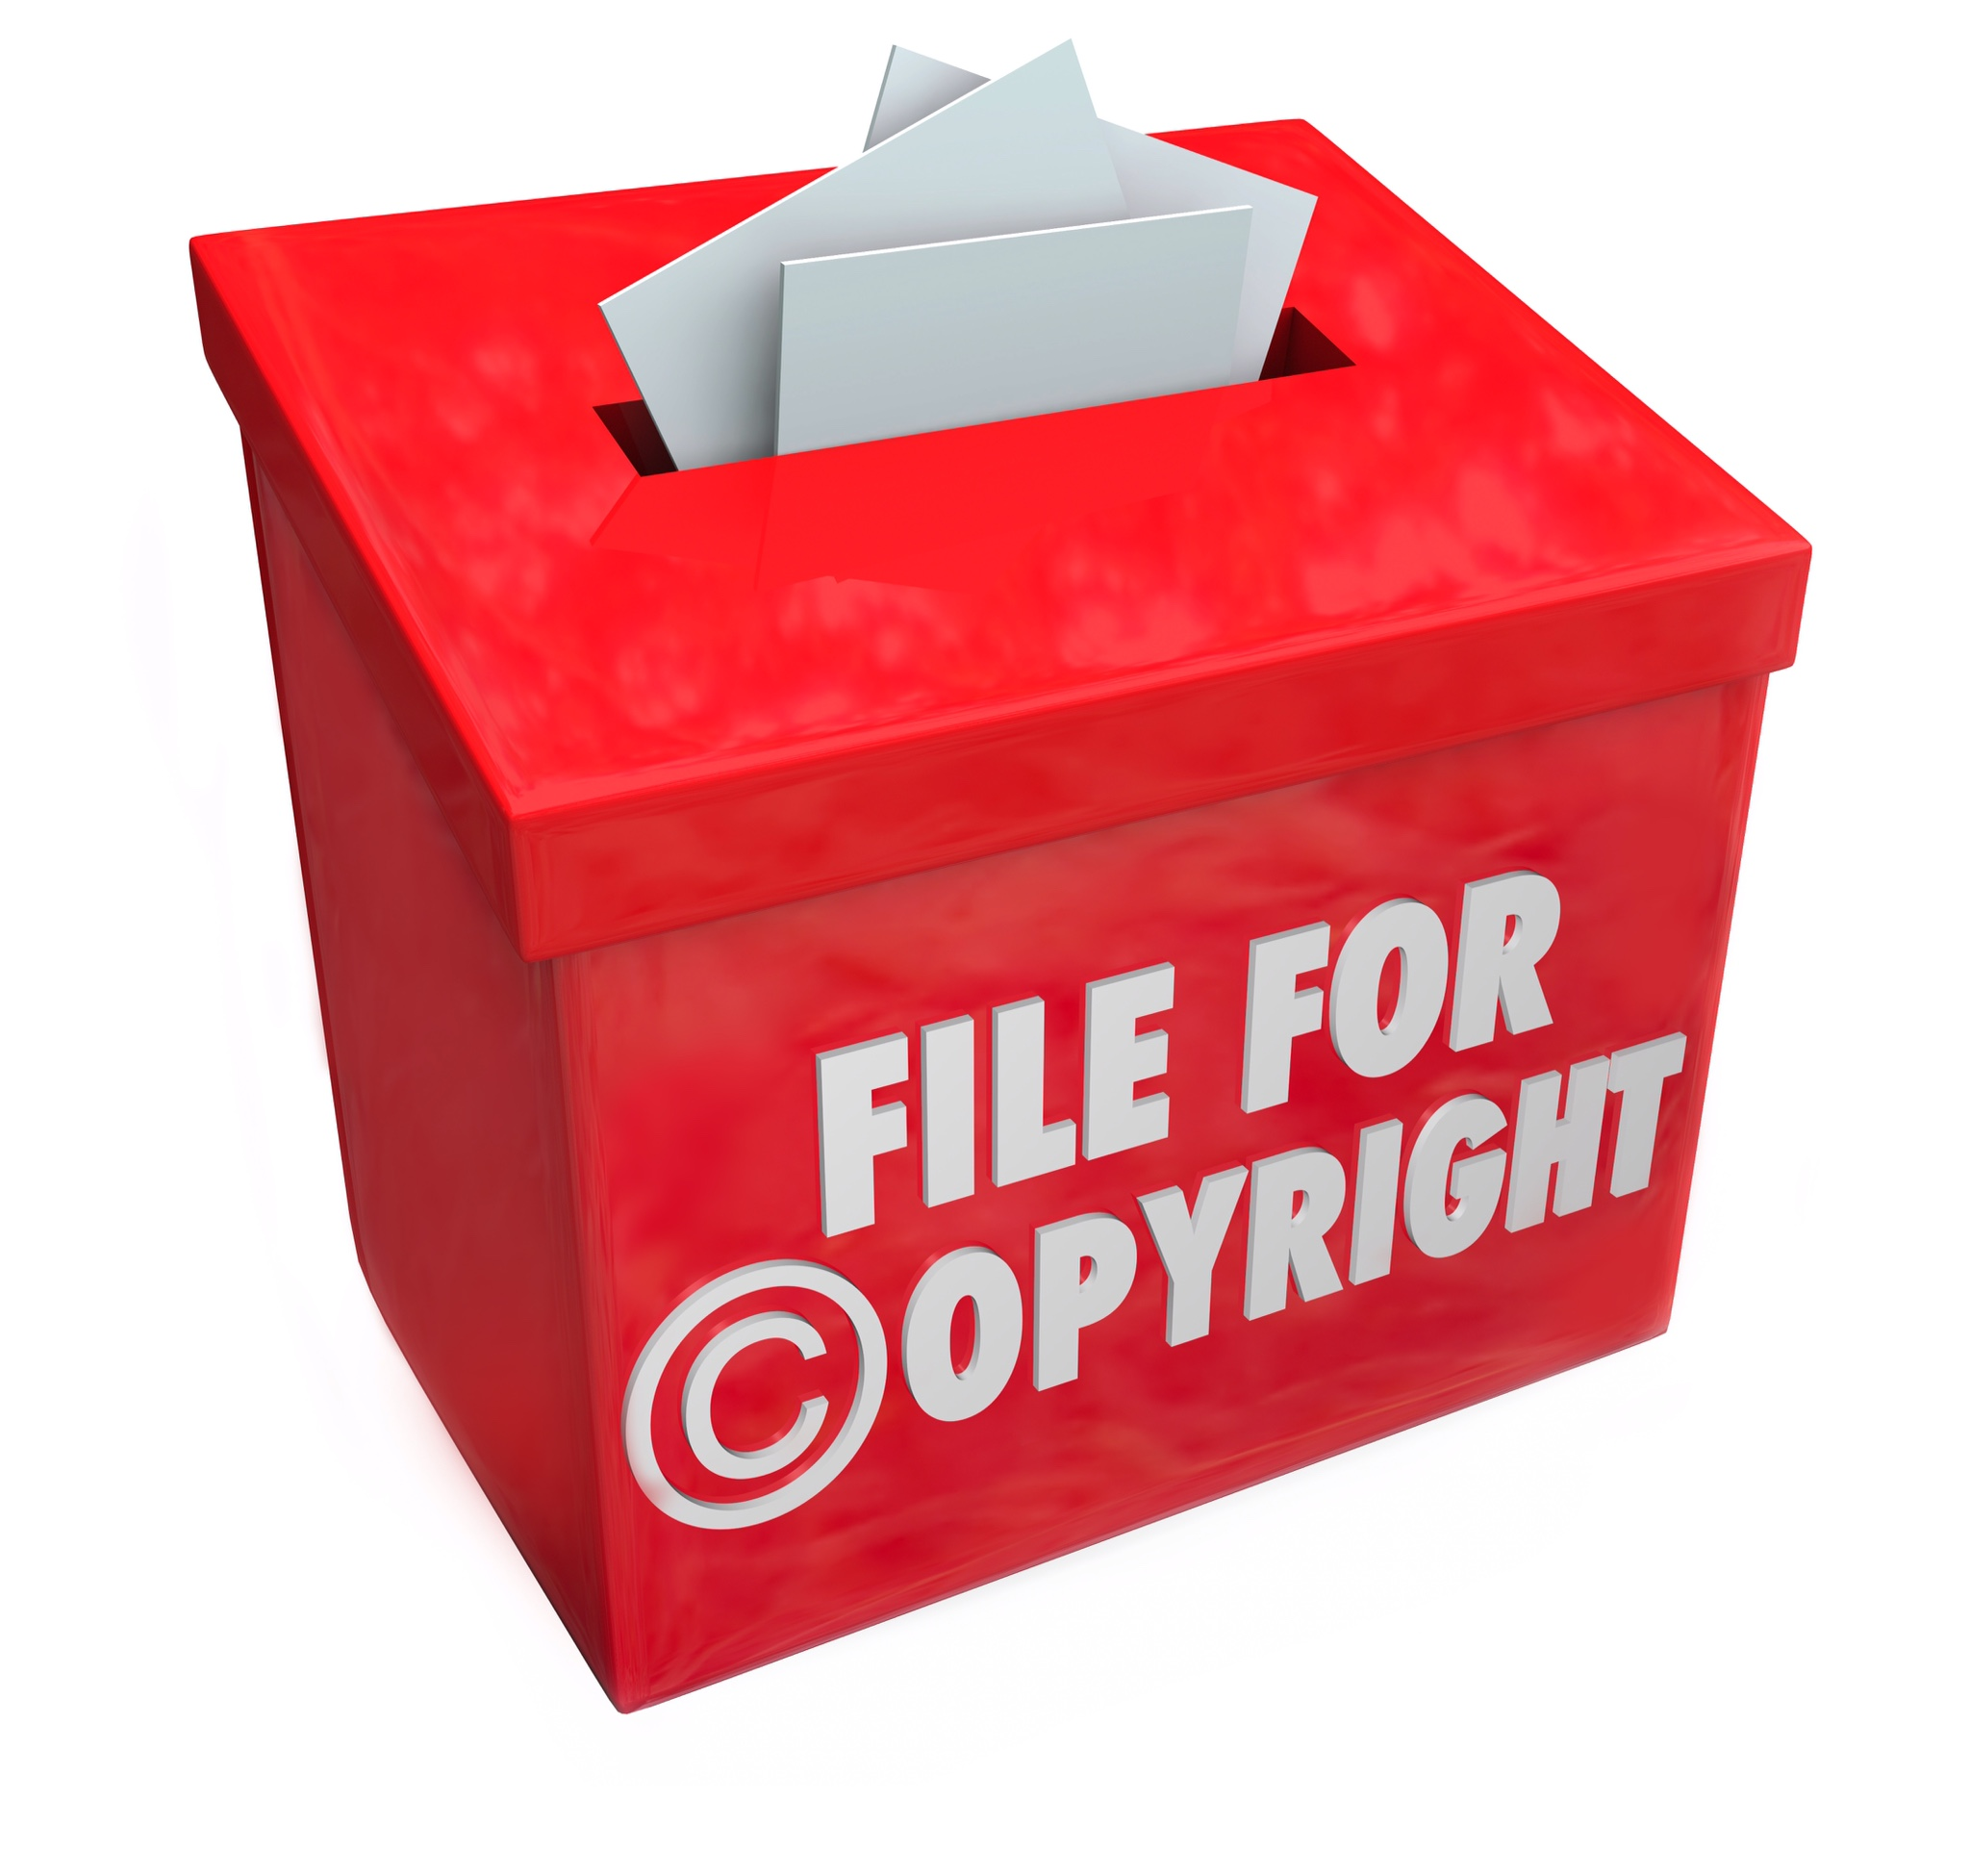 file for copyright